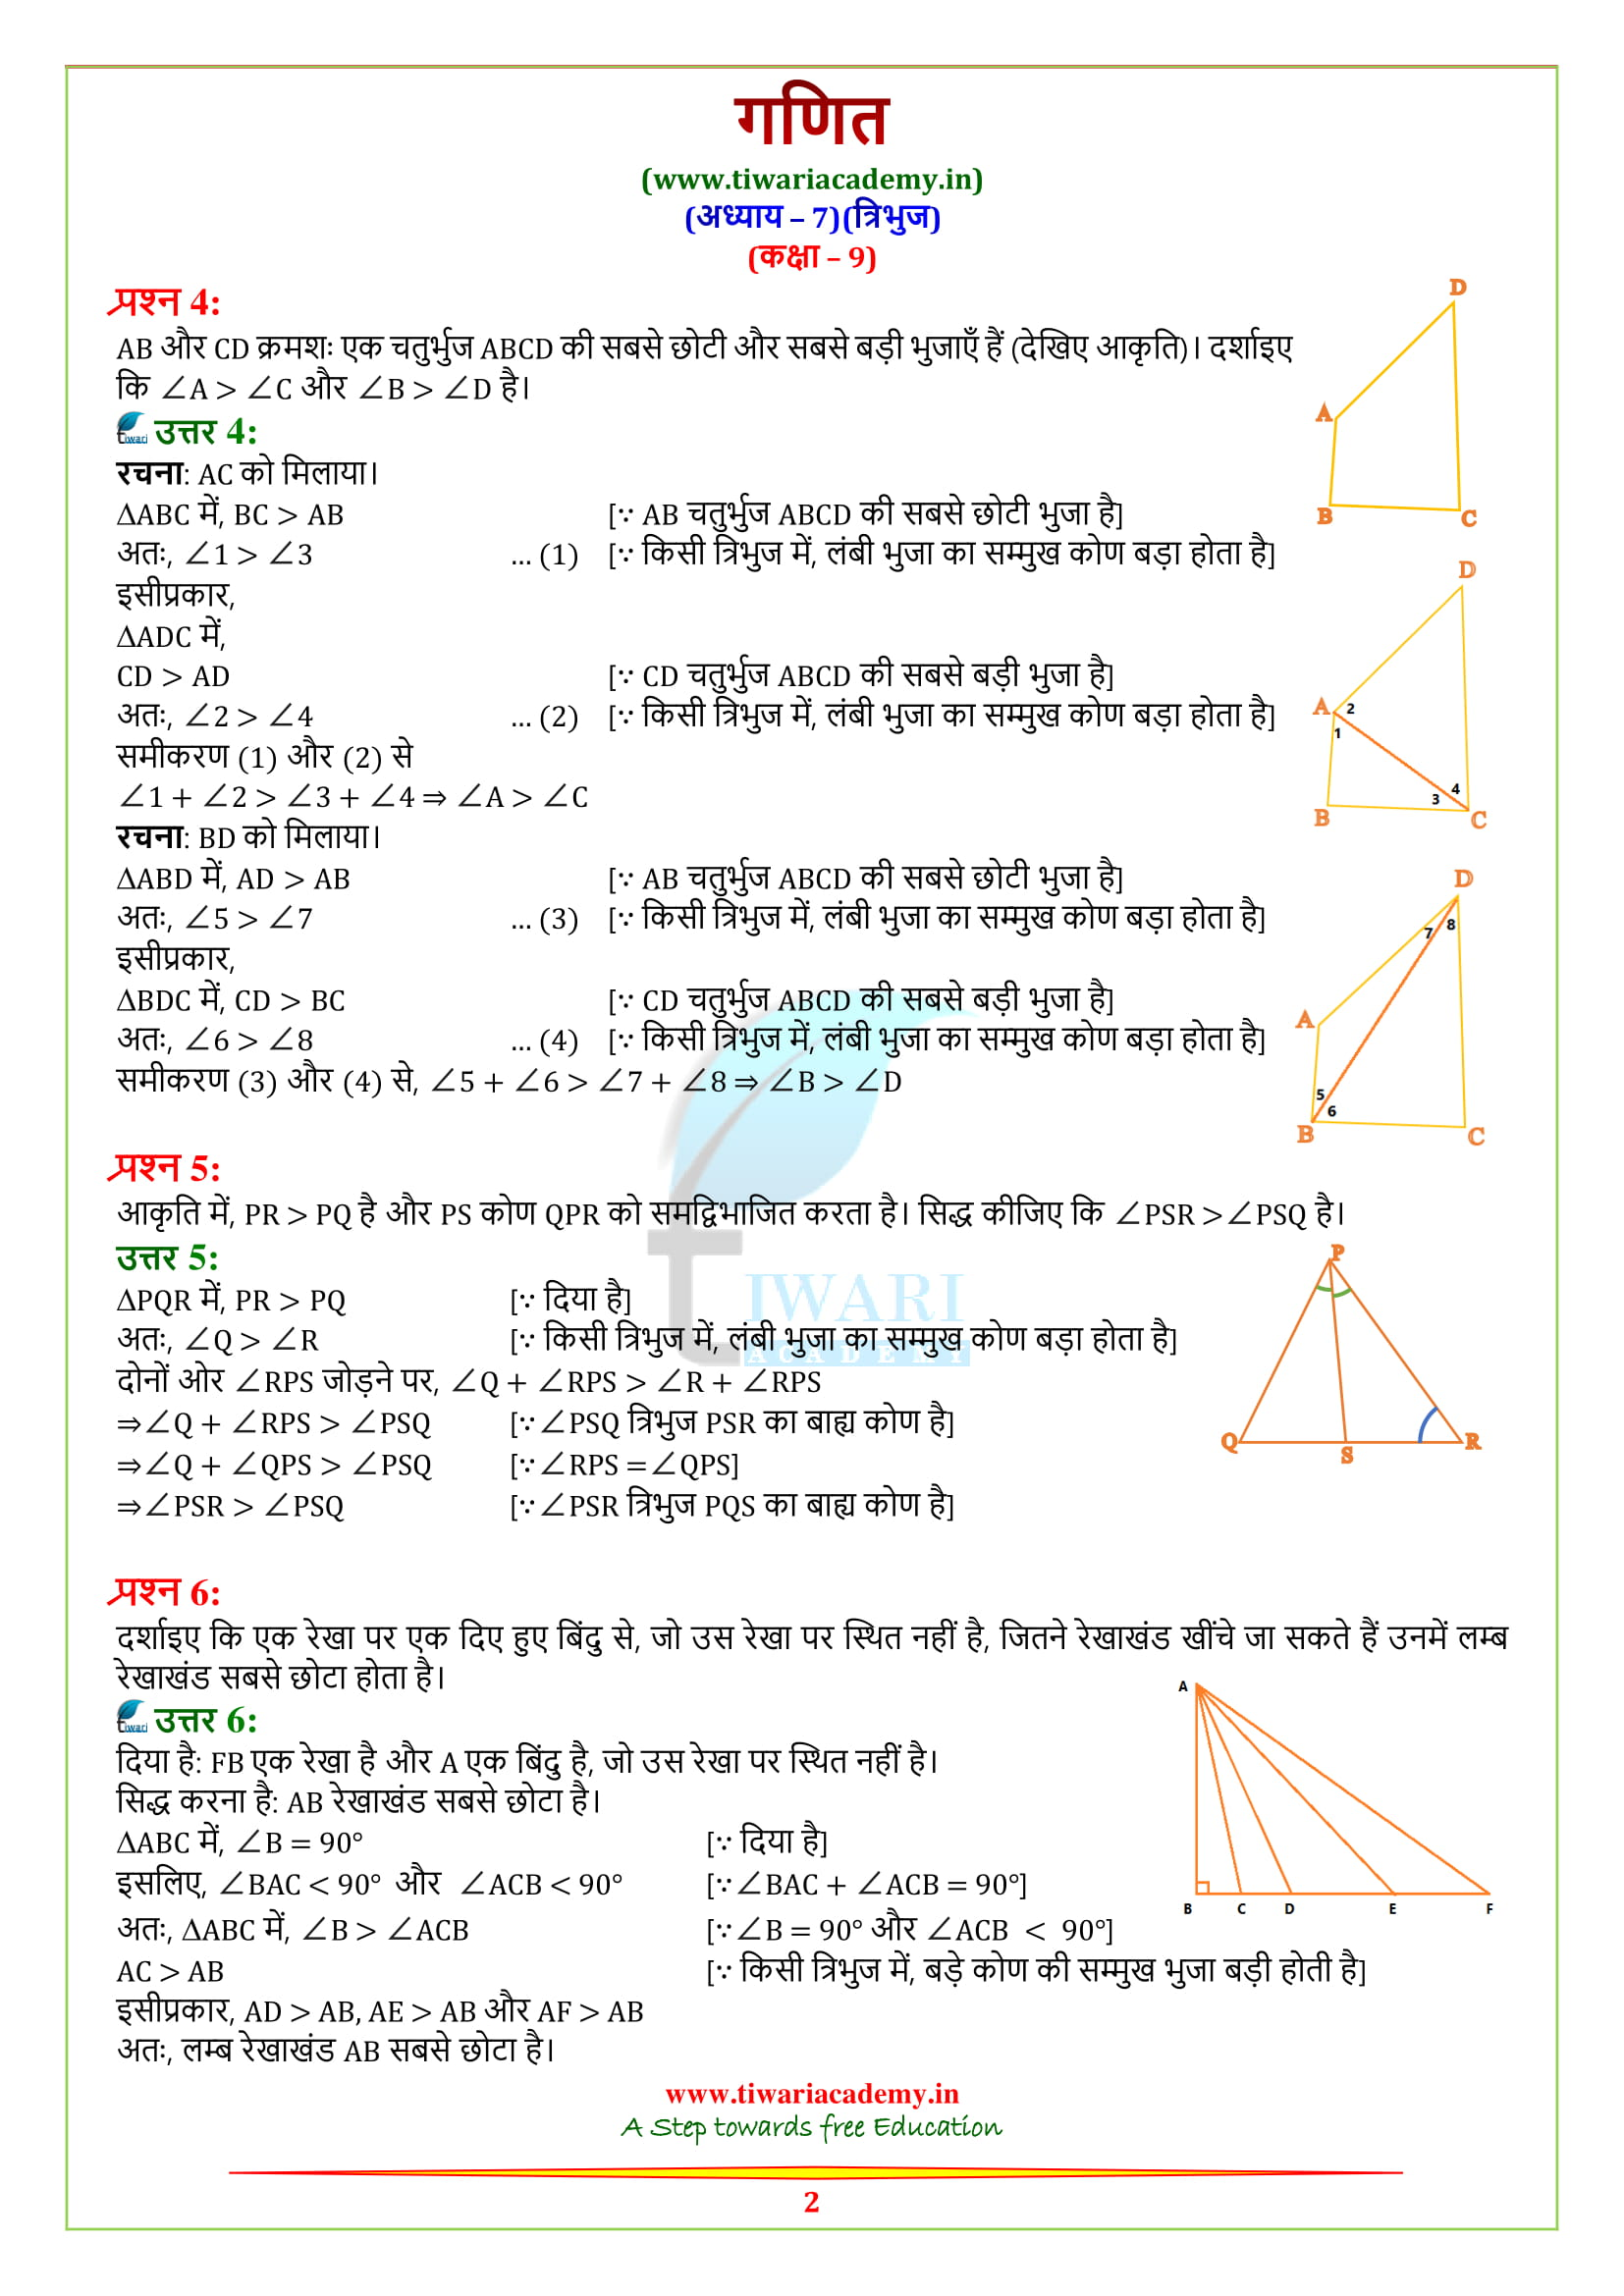 9 Maths Exercise 7.4 solutions guide solve in hindi